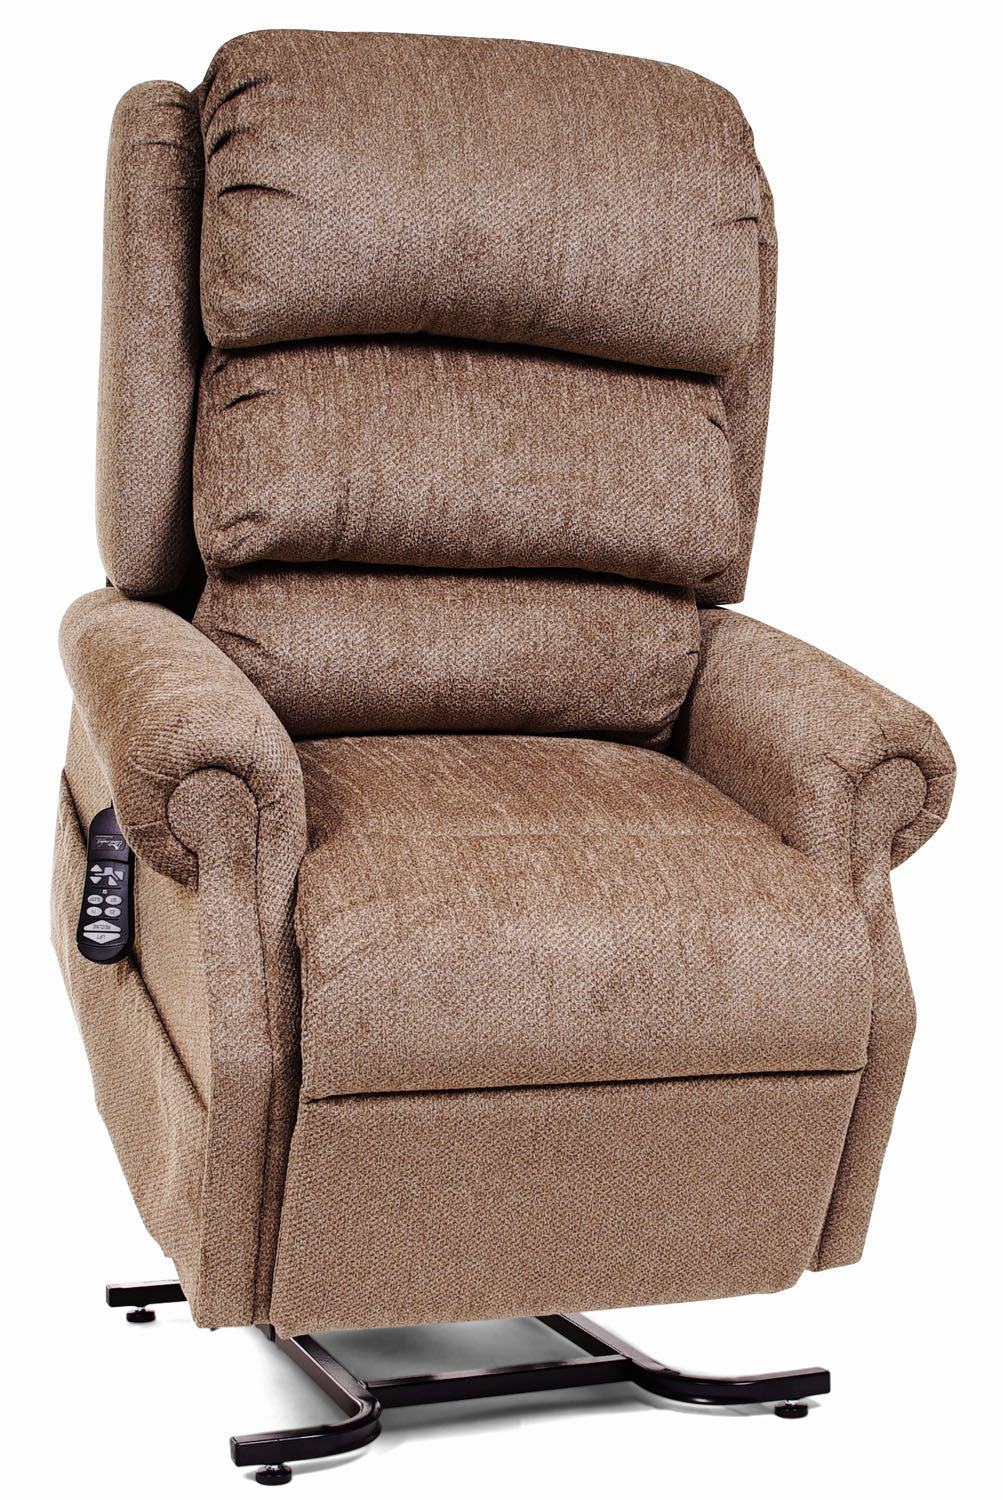 Superior UC550 JPT Petite Zero Gravity Lift Chair Recliner With Comfort Coil Seating